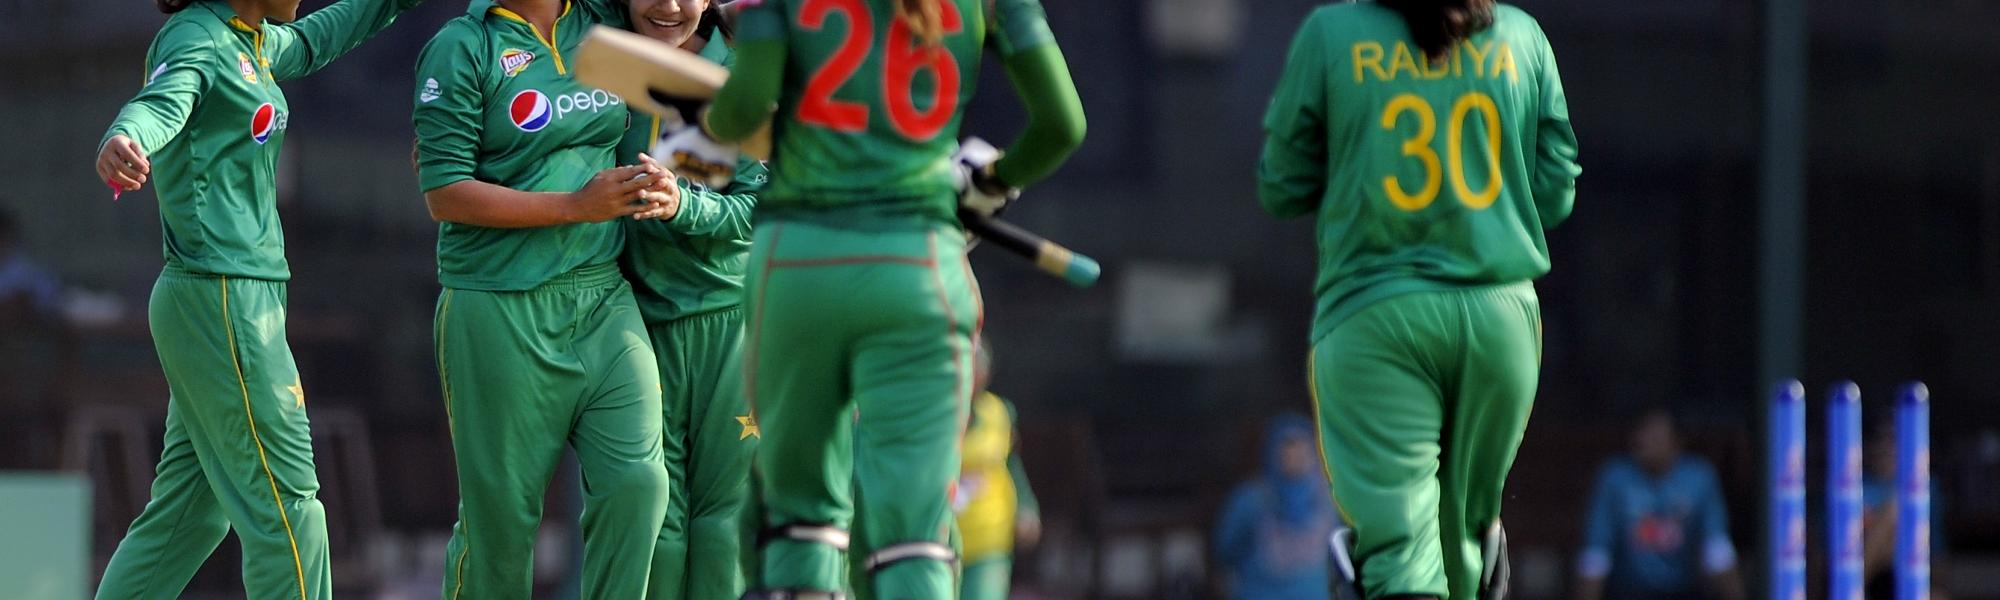 As Pakistan looks to record its best-ever performance at a World Cup, she admits that coping with the pressure will be crucial.